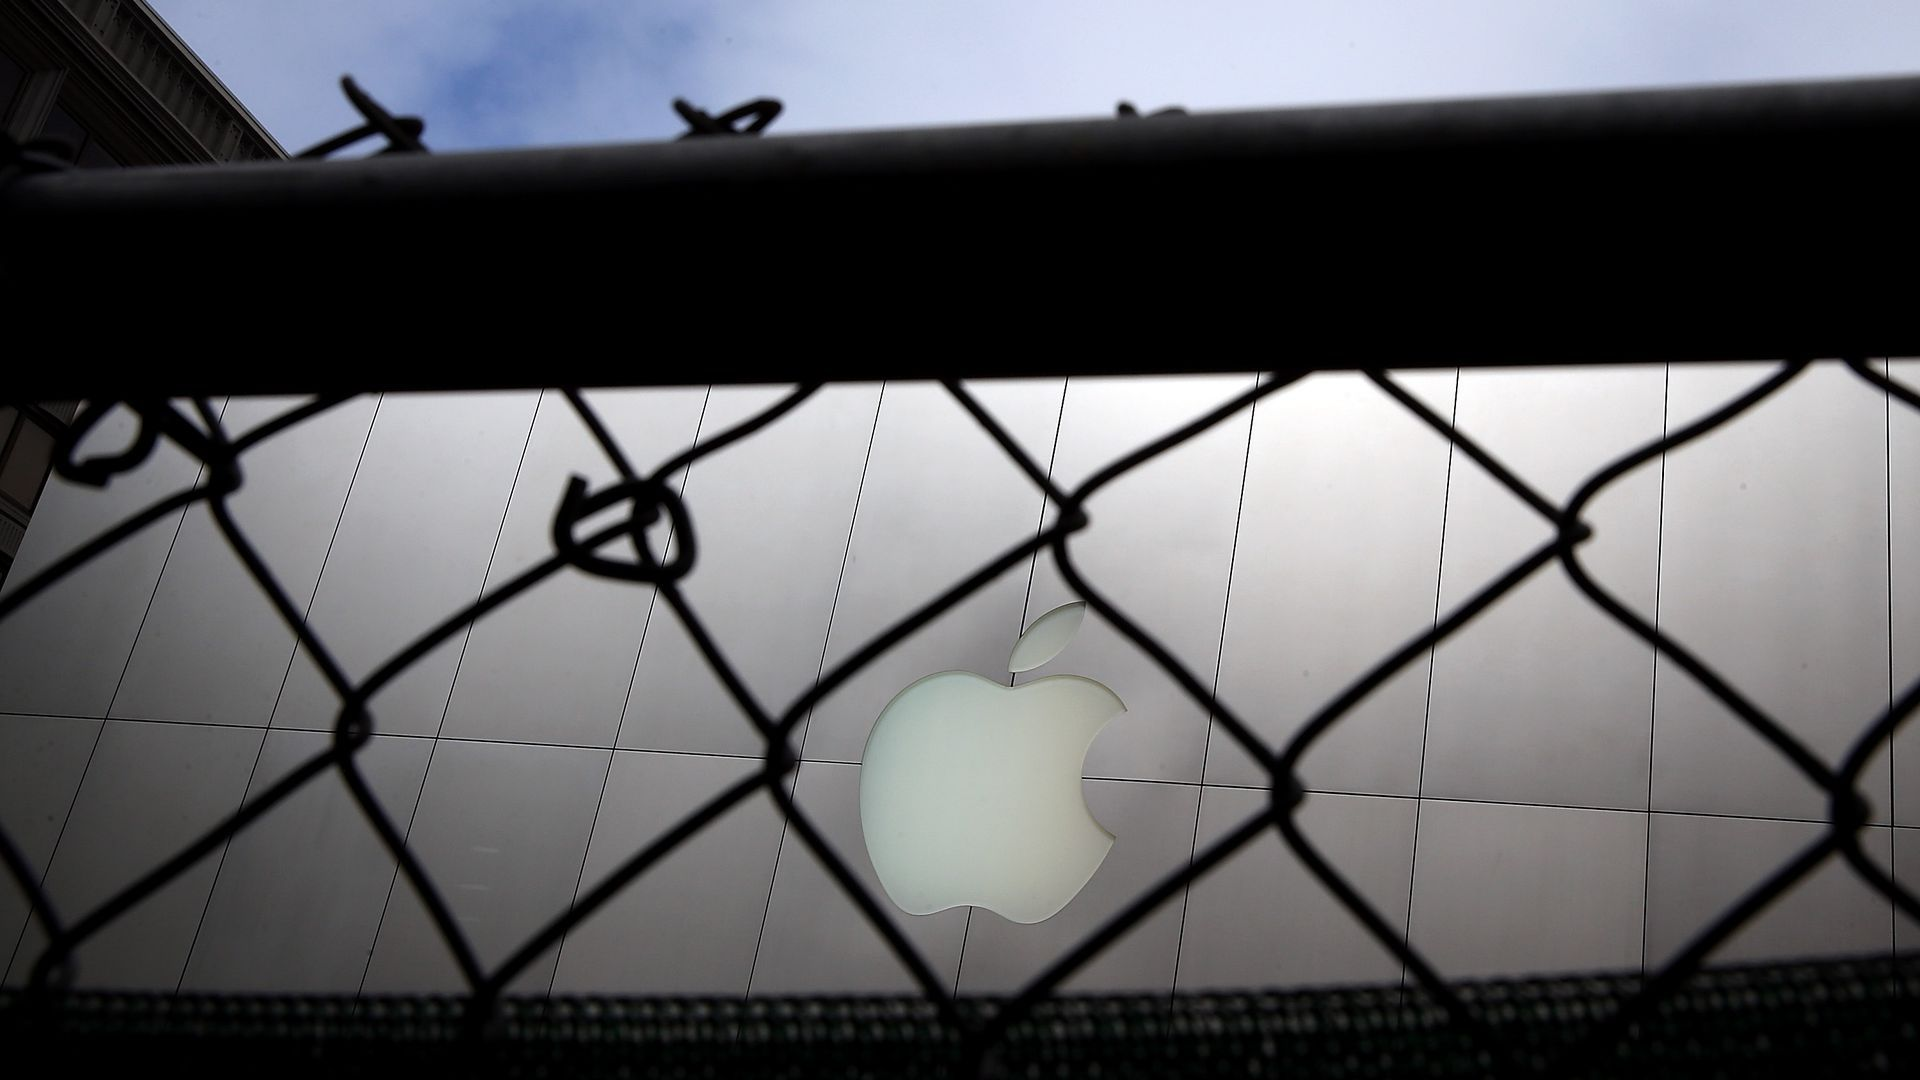 Apple laptop with its log as seen outside through a chain link fence